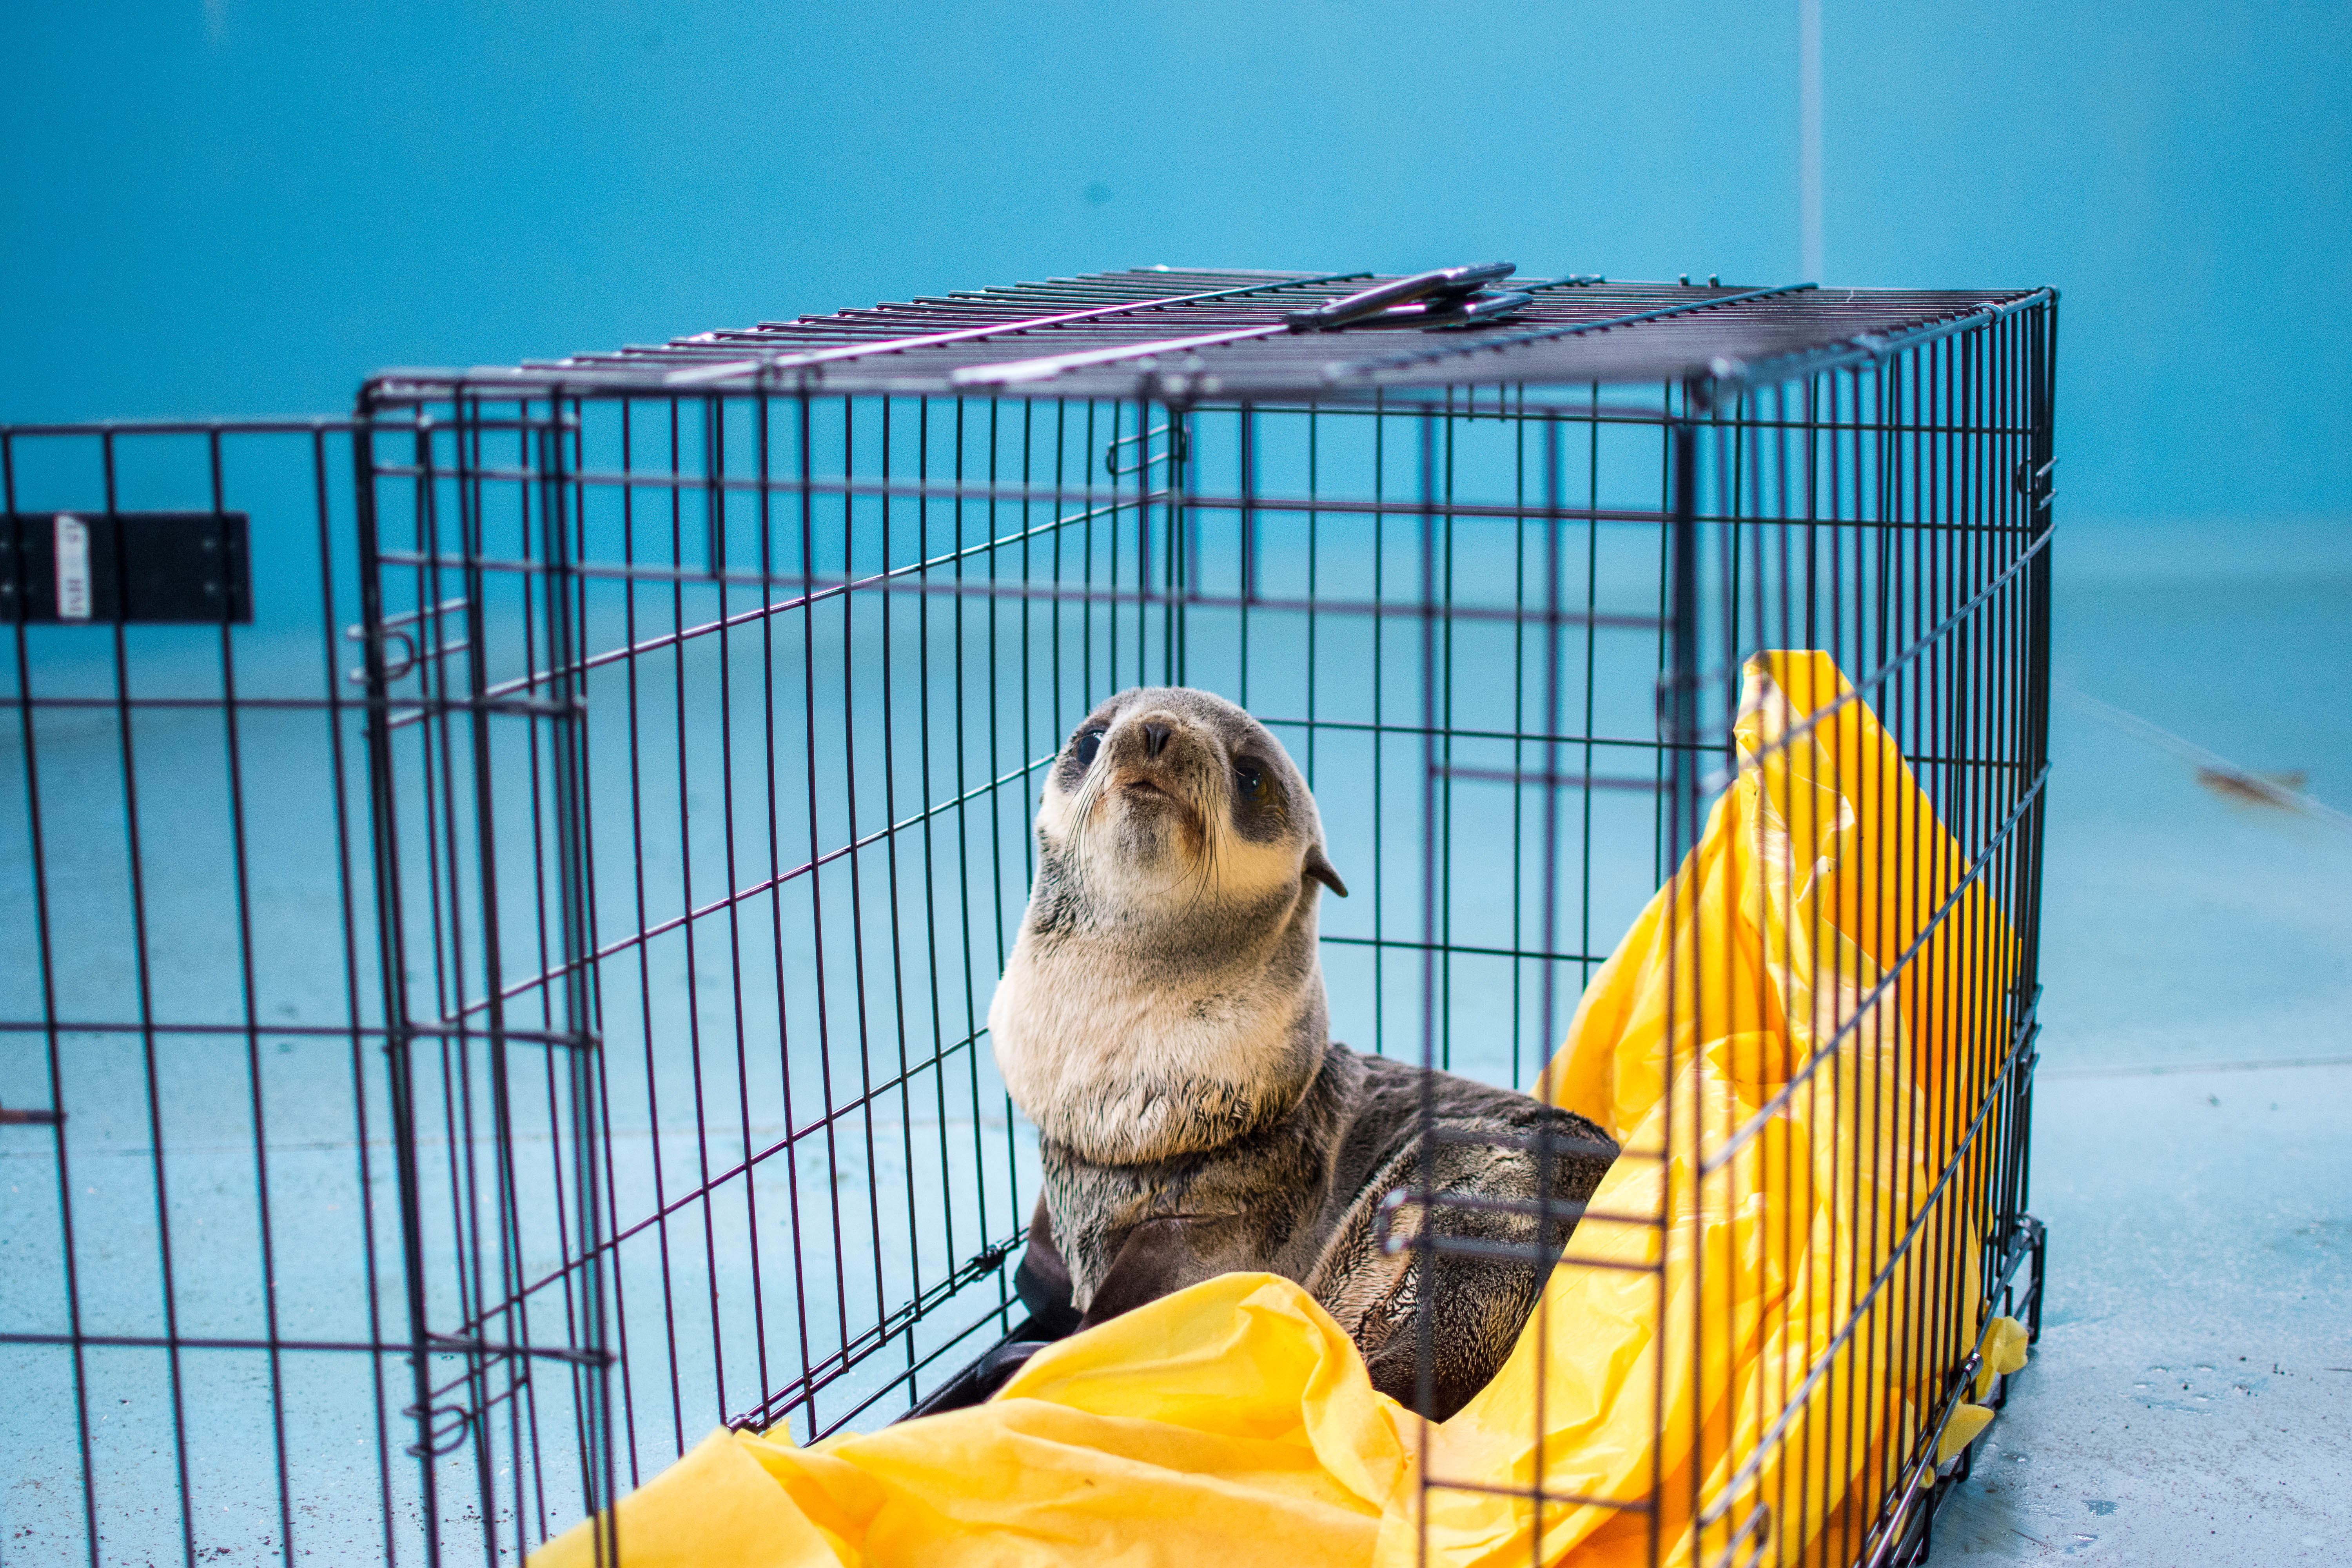 A fur seal pup found with a plastic string around the neck in an RV parking lot in Winchester Bay on Monday will be released back into the wild Wednesday, the Oregon Coast Aquarium said. Aquarium staff said the male northern fur seal pup likely crossed the road to the RV lot from the water. The string had cut through the seal's thick fur and skin, leaving an open wound around its neck. The string likely came from a balloon or packaging material, Aquarium staff said. (Oregon Coast Aquarium)